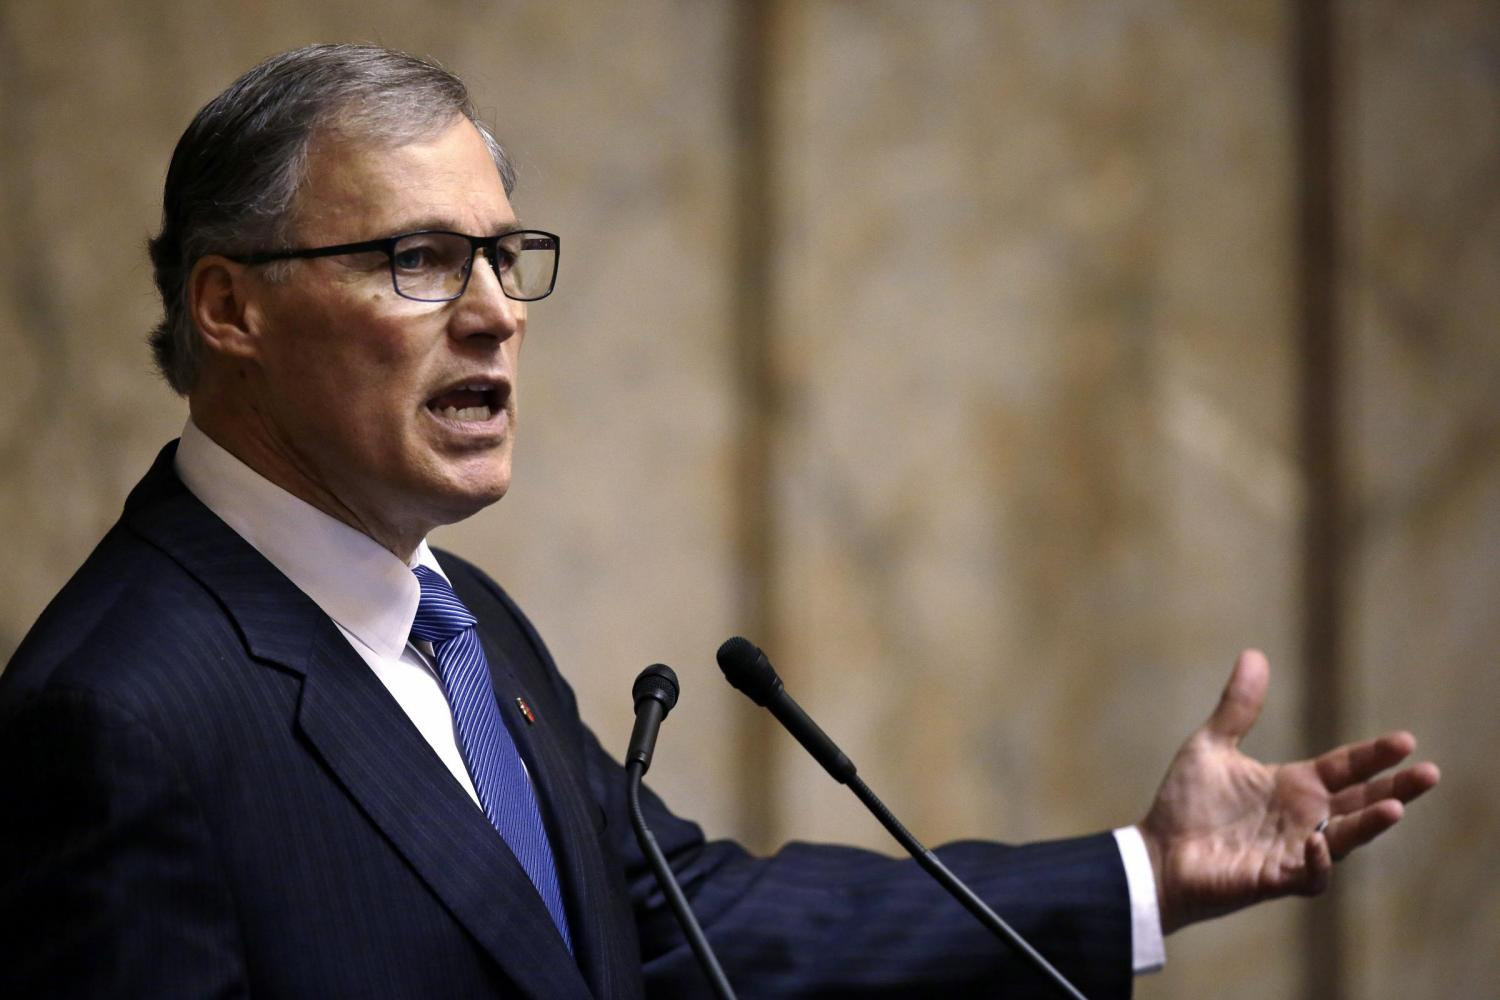 Gov. Jay Inslee of Washington